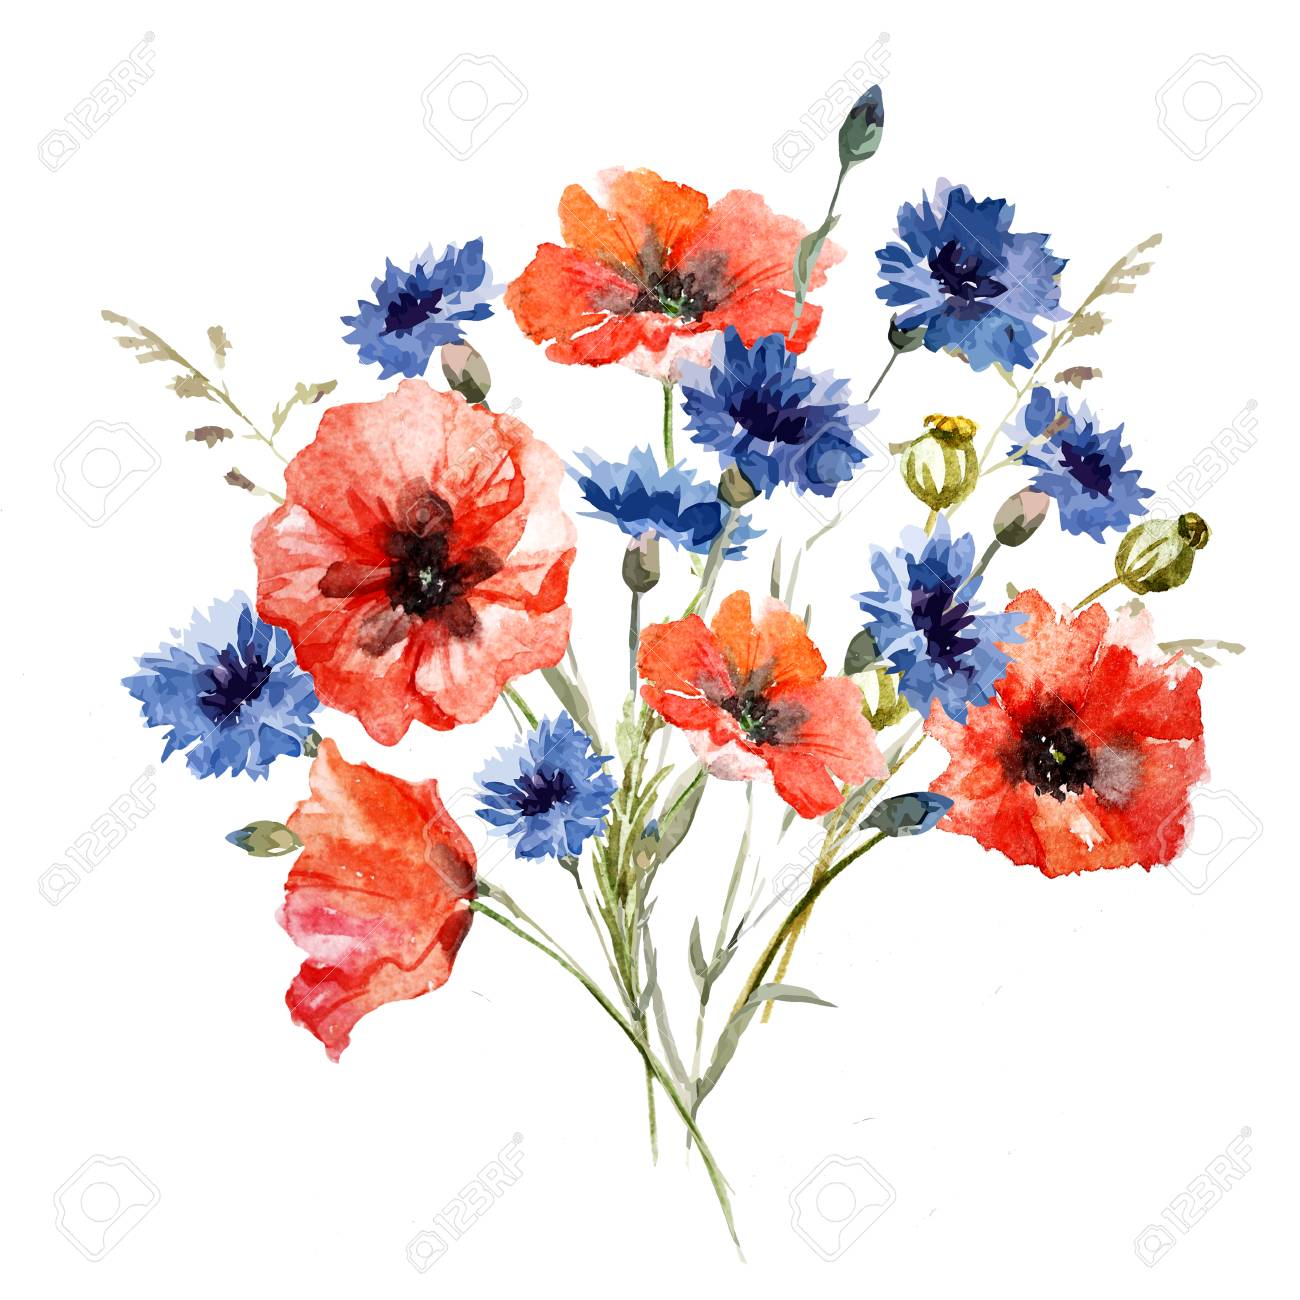 Beautiful Image With Nice Watercolor Wild Flowers Bouquet Stock